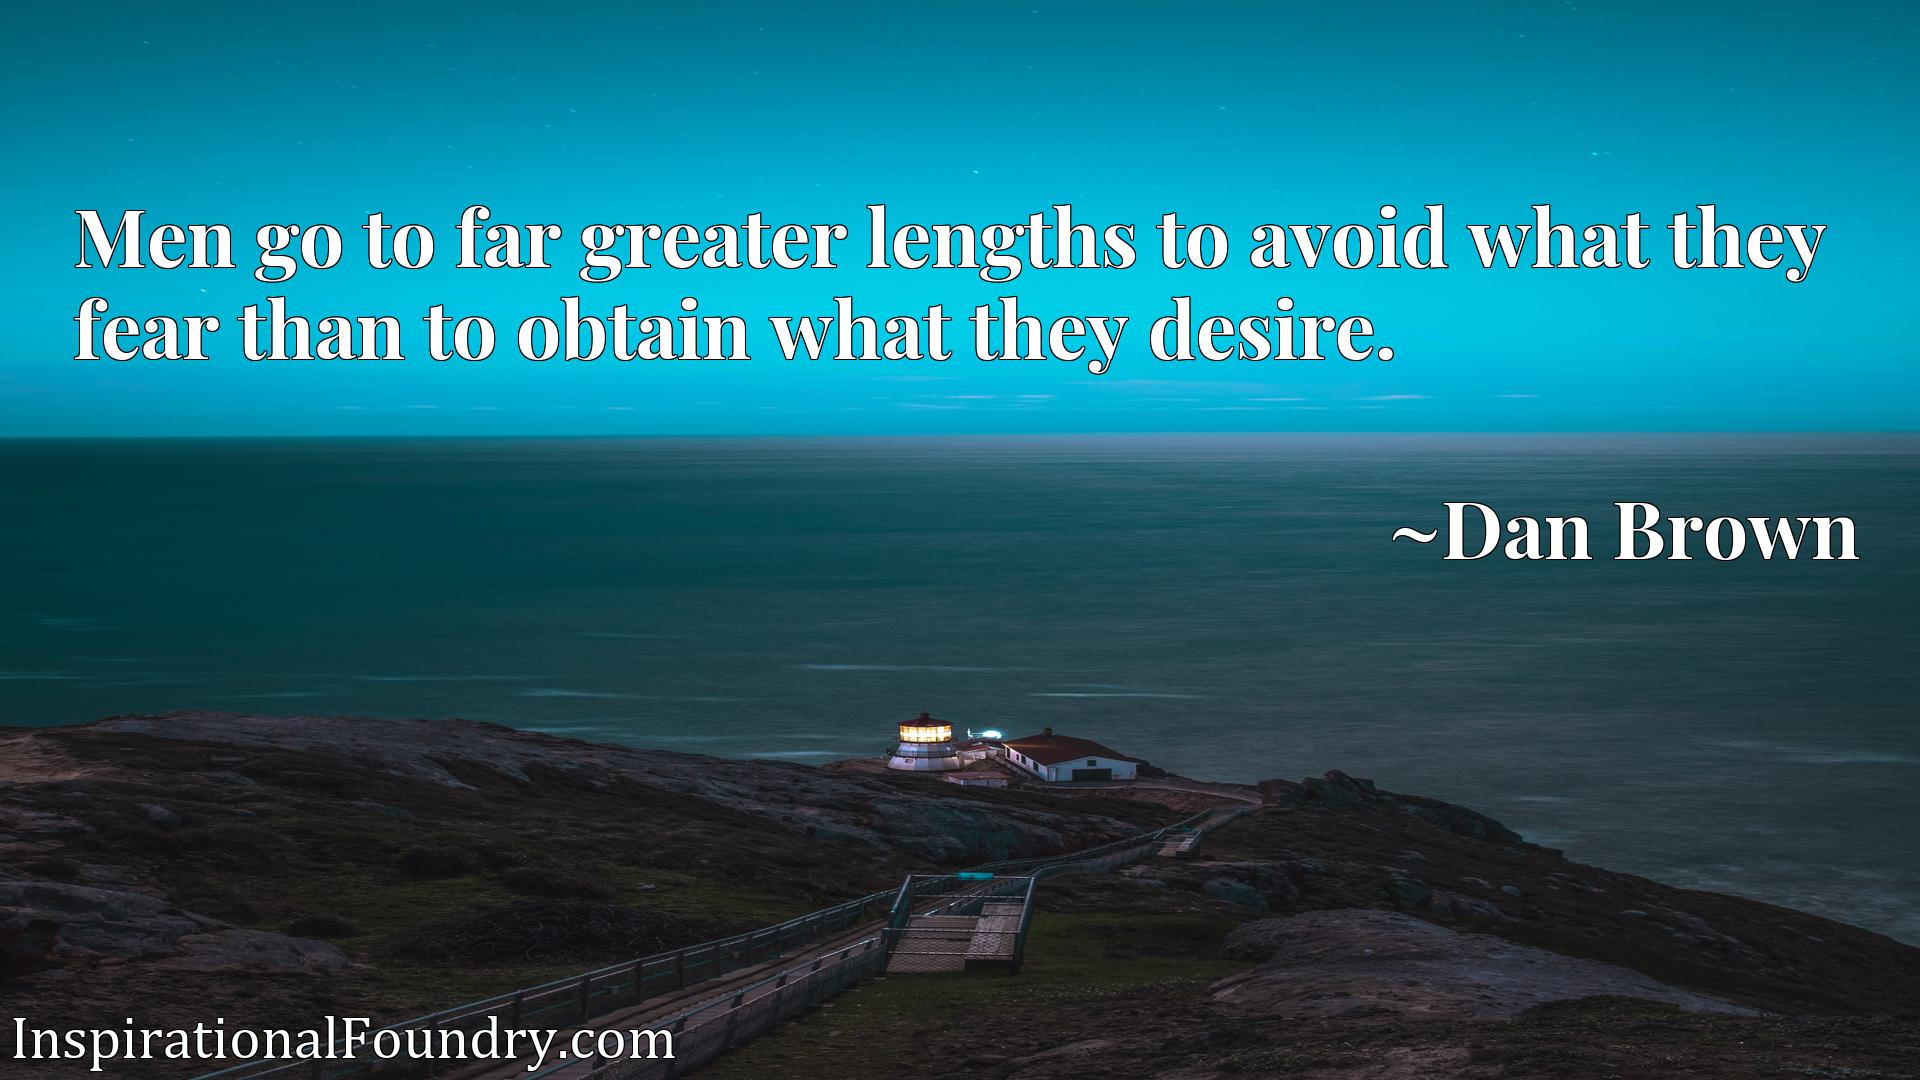 Men go to far greater lengths to avoid what they fear than to obtain what they desire.